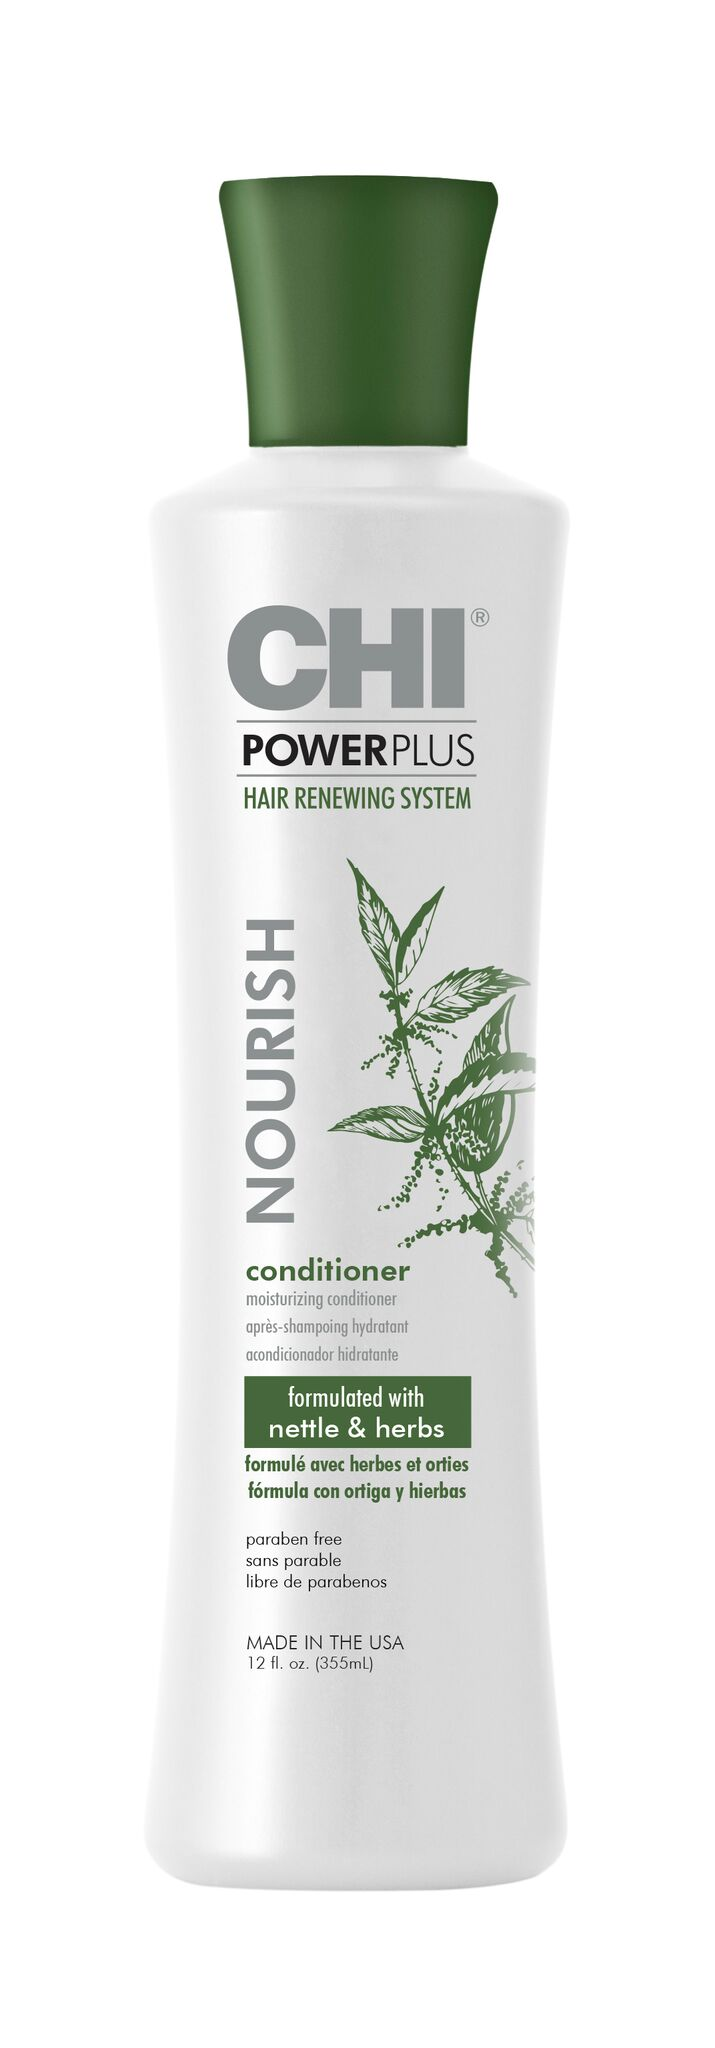 CHI Power Plus Line Conditioner 12oz preview - CHI POWER PLUS